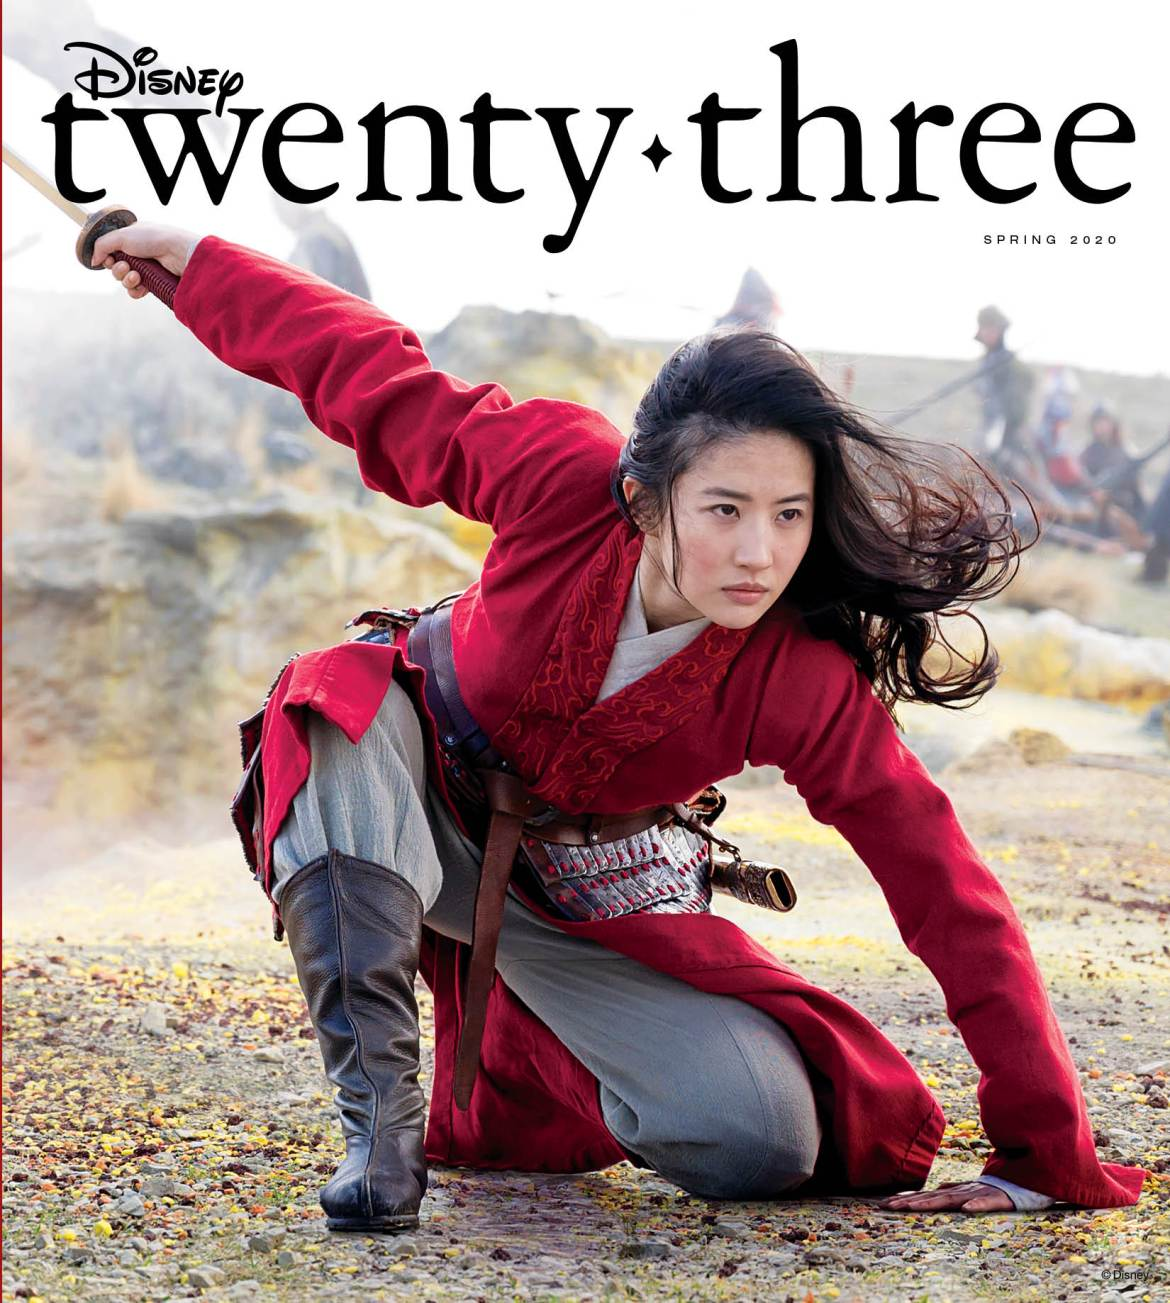 Live Action Mulan on the cover of the latest issue of D23 Magazine